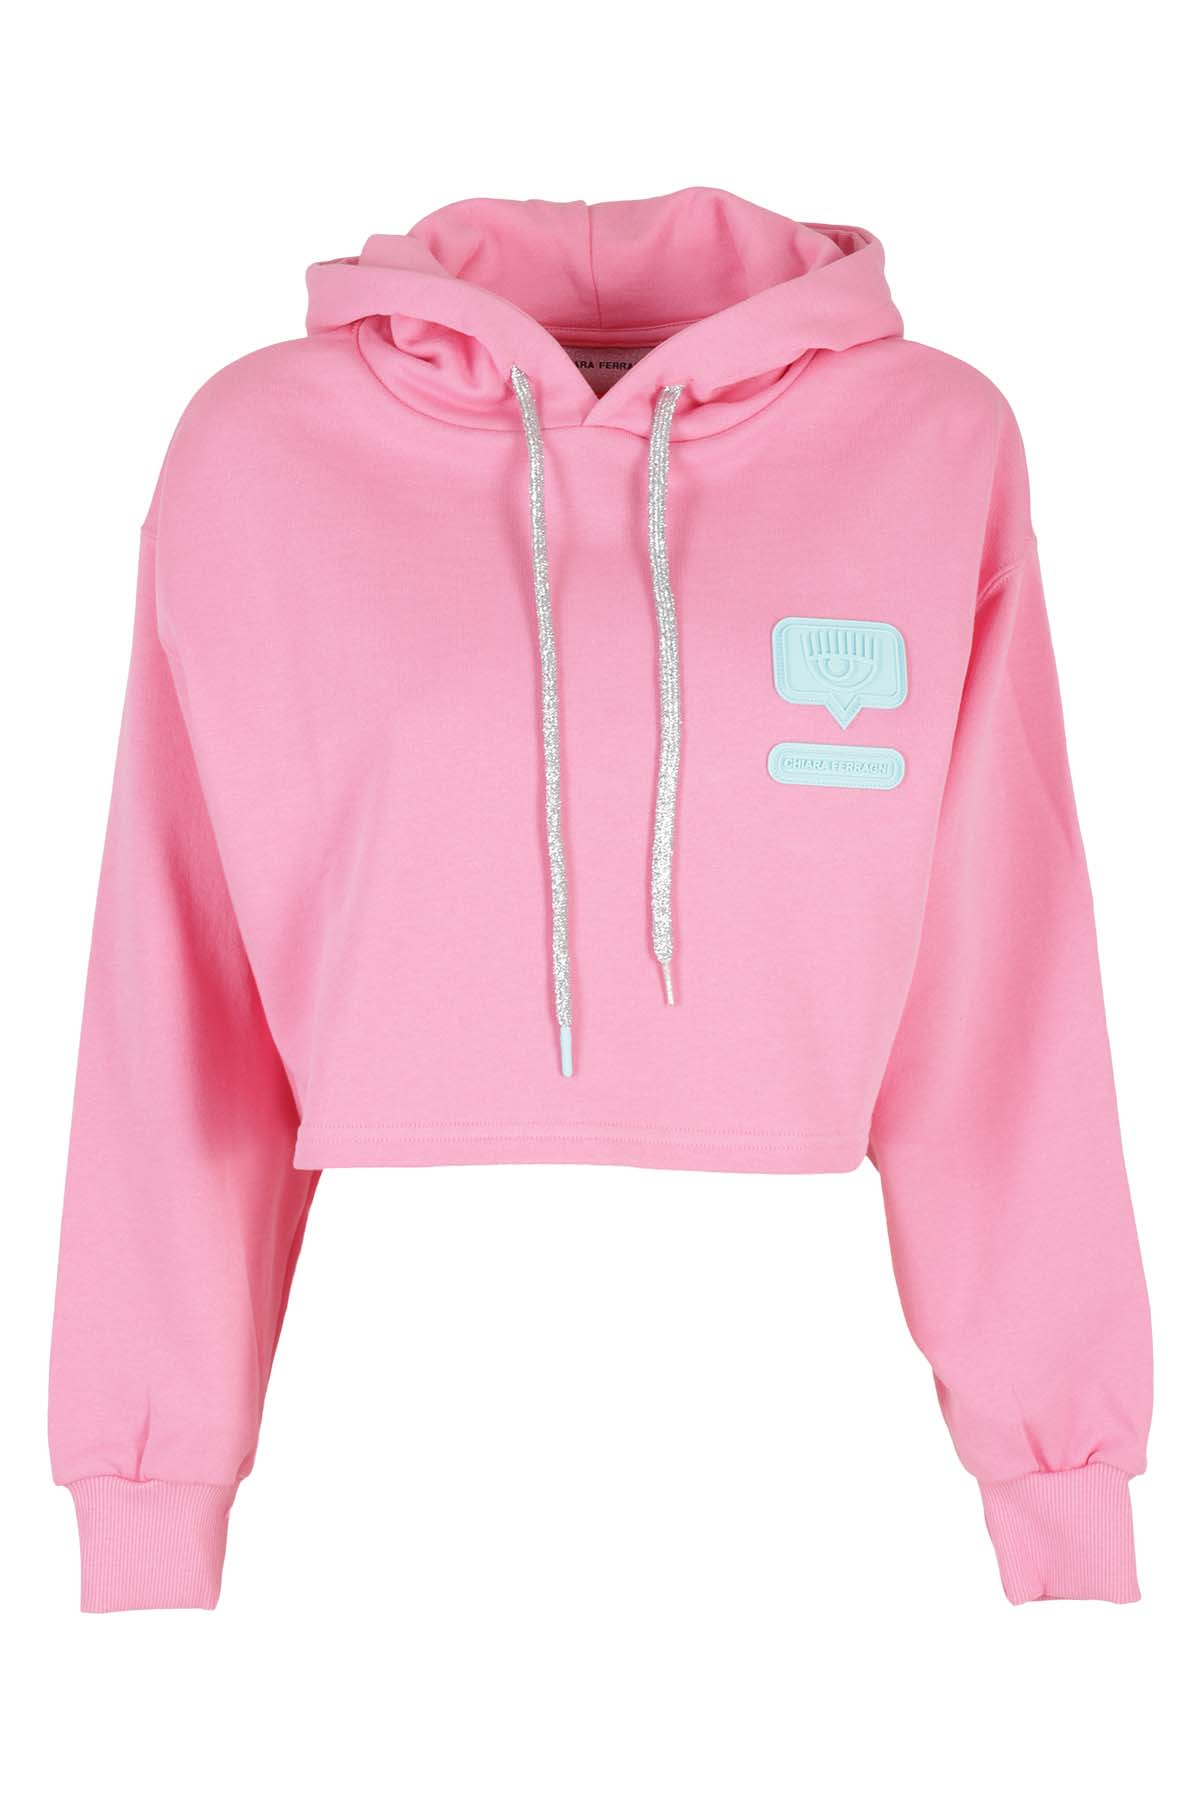 Chiara Ferragni Clothing FLEECE